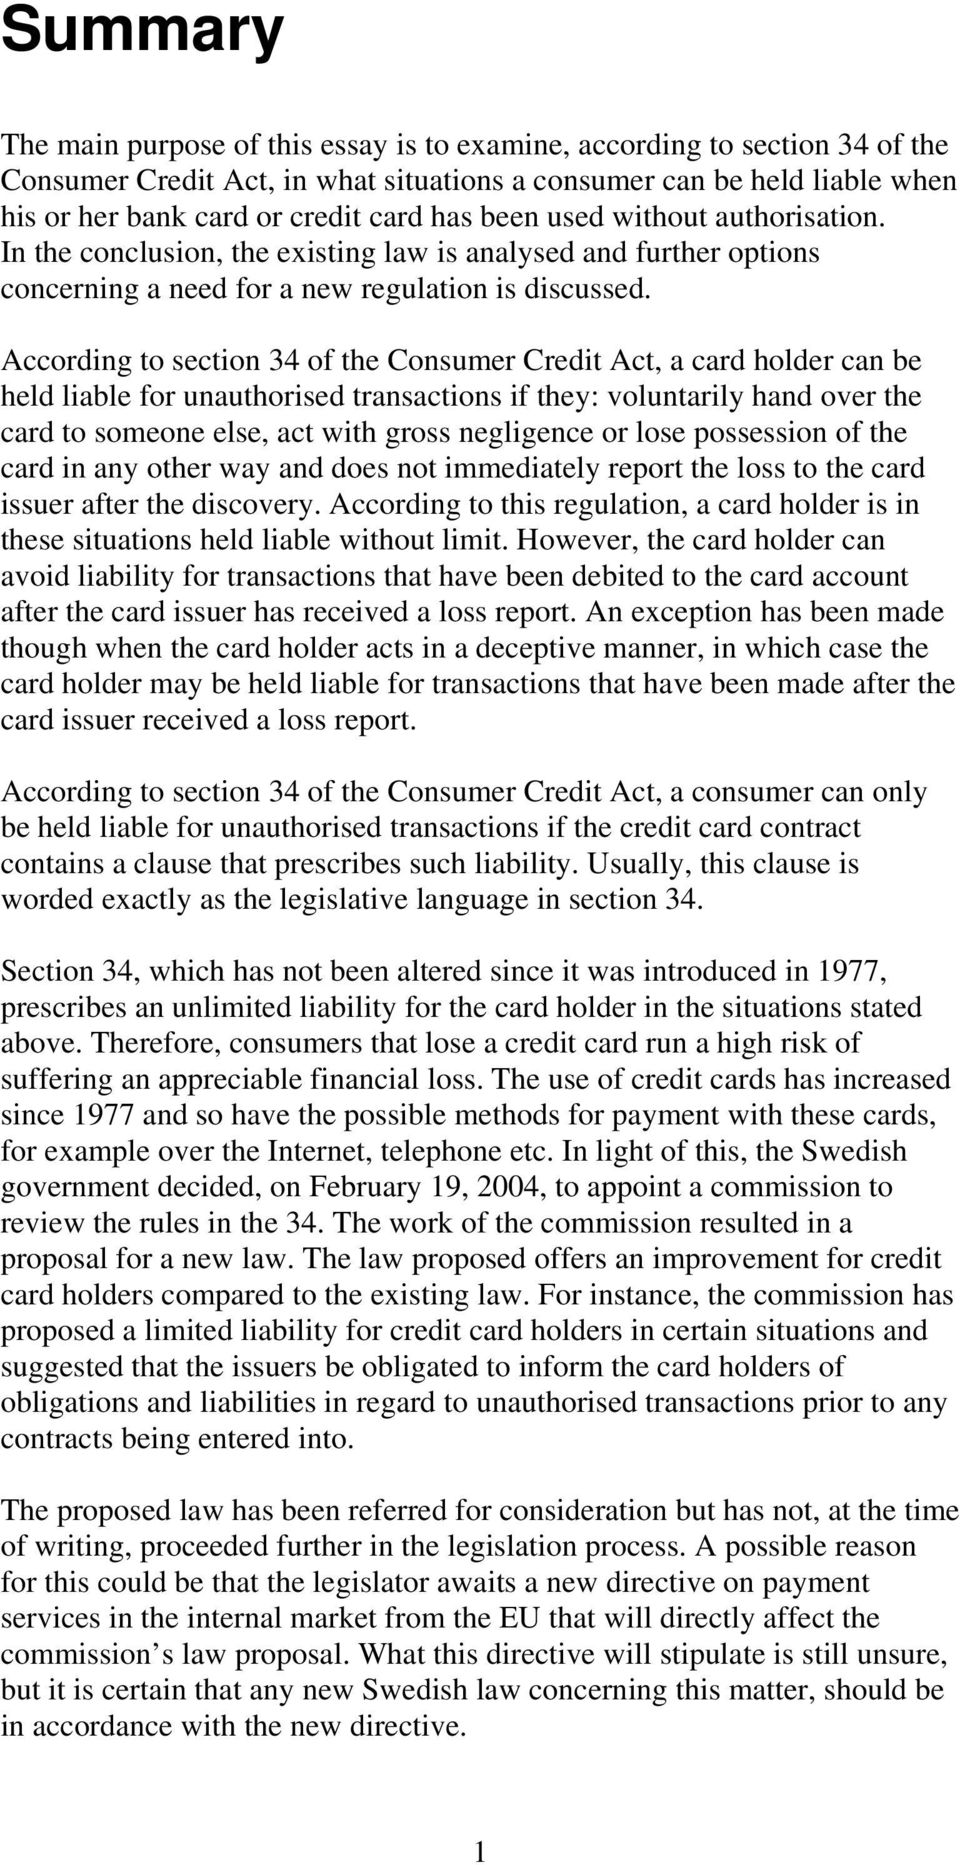 According to section 34 of the Consumer Credit Act, a card holder can be held liable for unauthorised transactions if they: voluntarily hand over the card to someone else, act with gross negligence